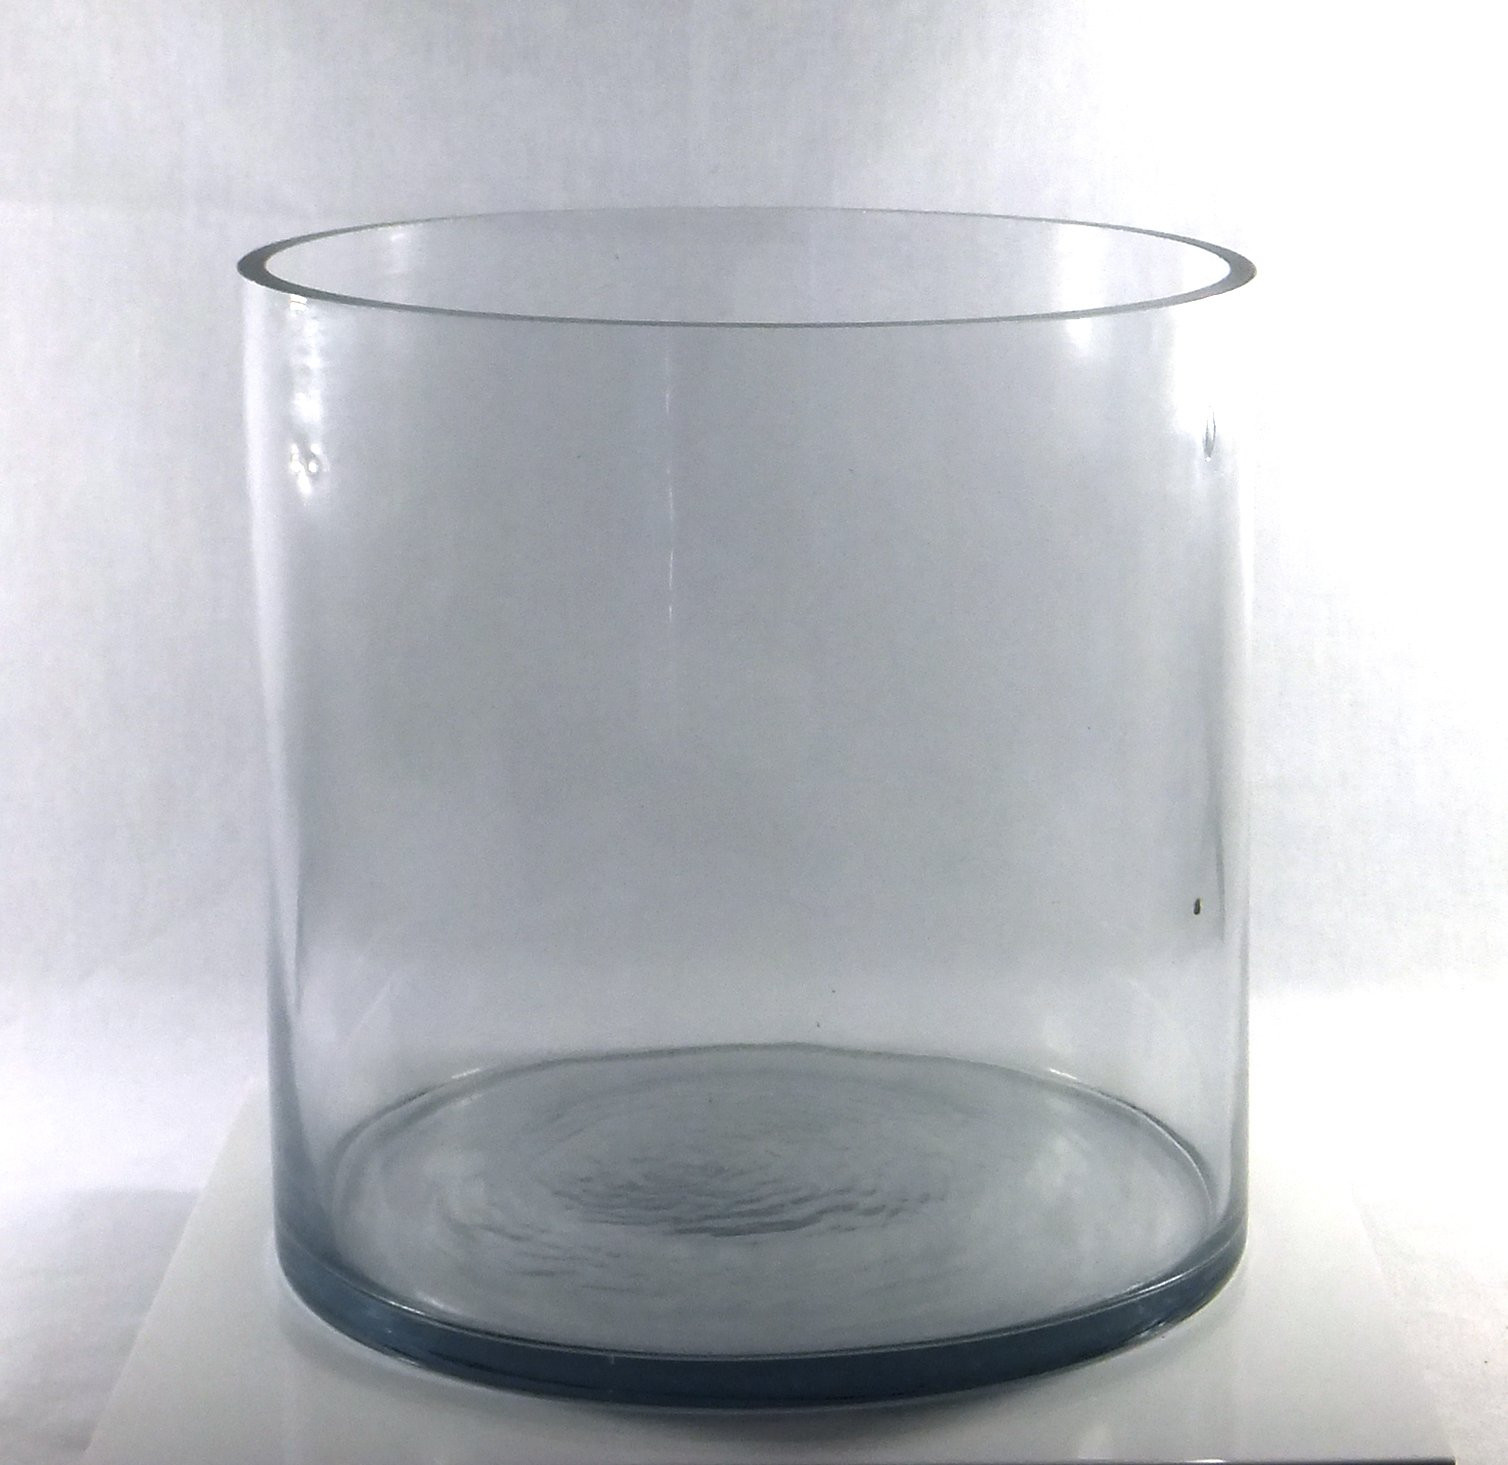 6 inch glass vase of buy 8 inch round large glass vase 8 clear cylinder oversize within 8 inch round large glass vase 8 clear cylinder oversize centerpiece 8x8